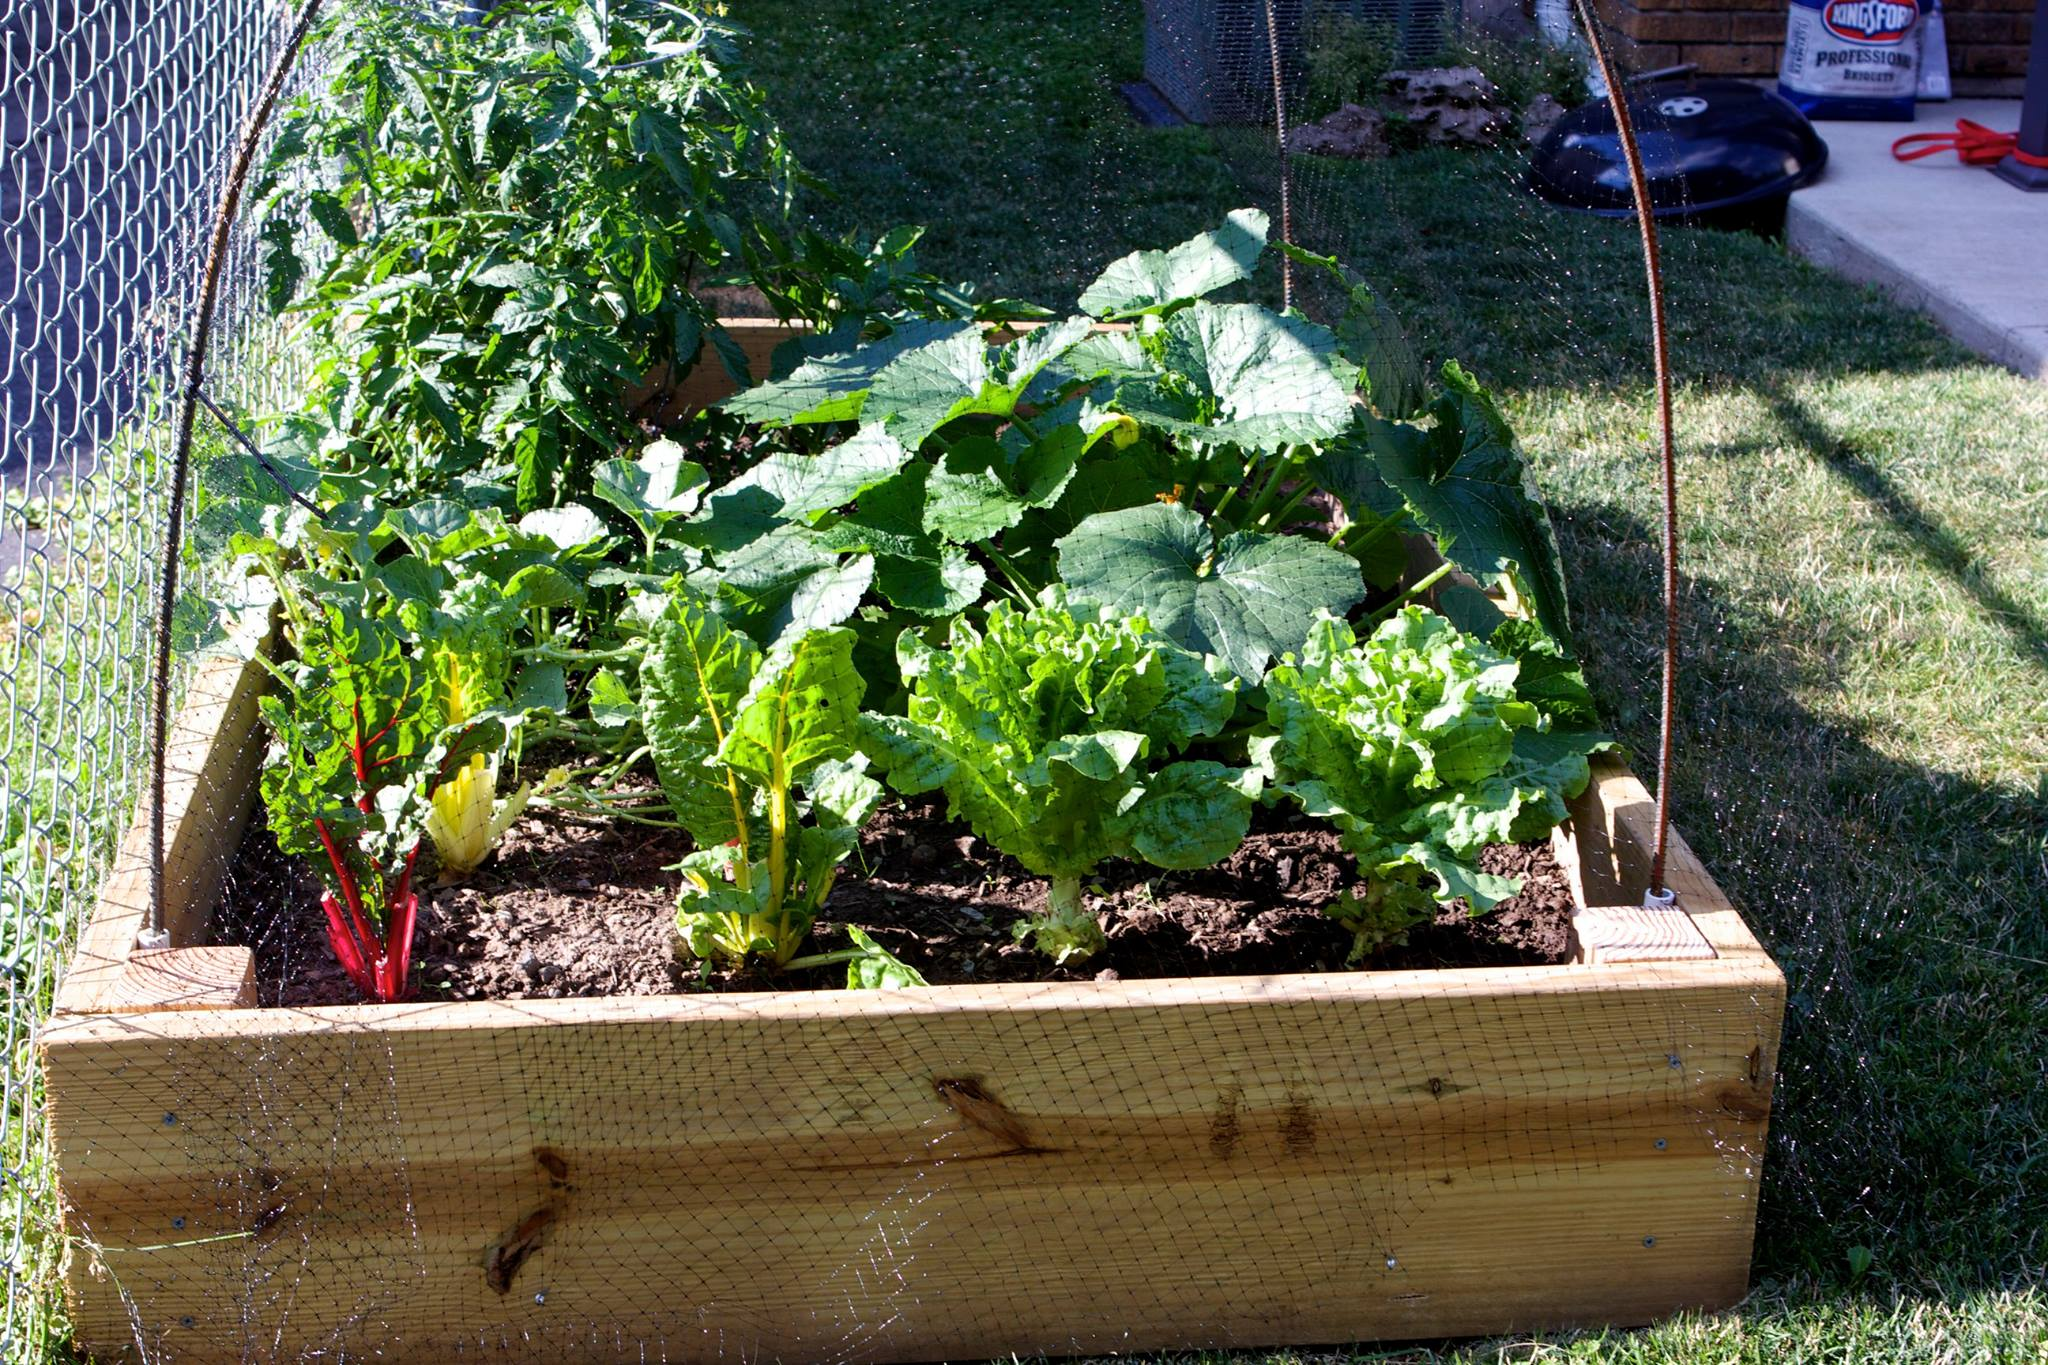 Square foot gardening method in urban or suburban backyards